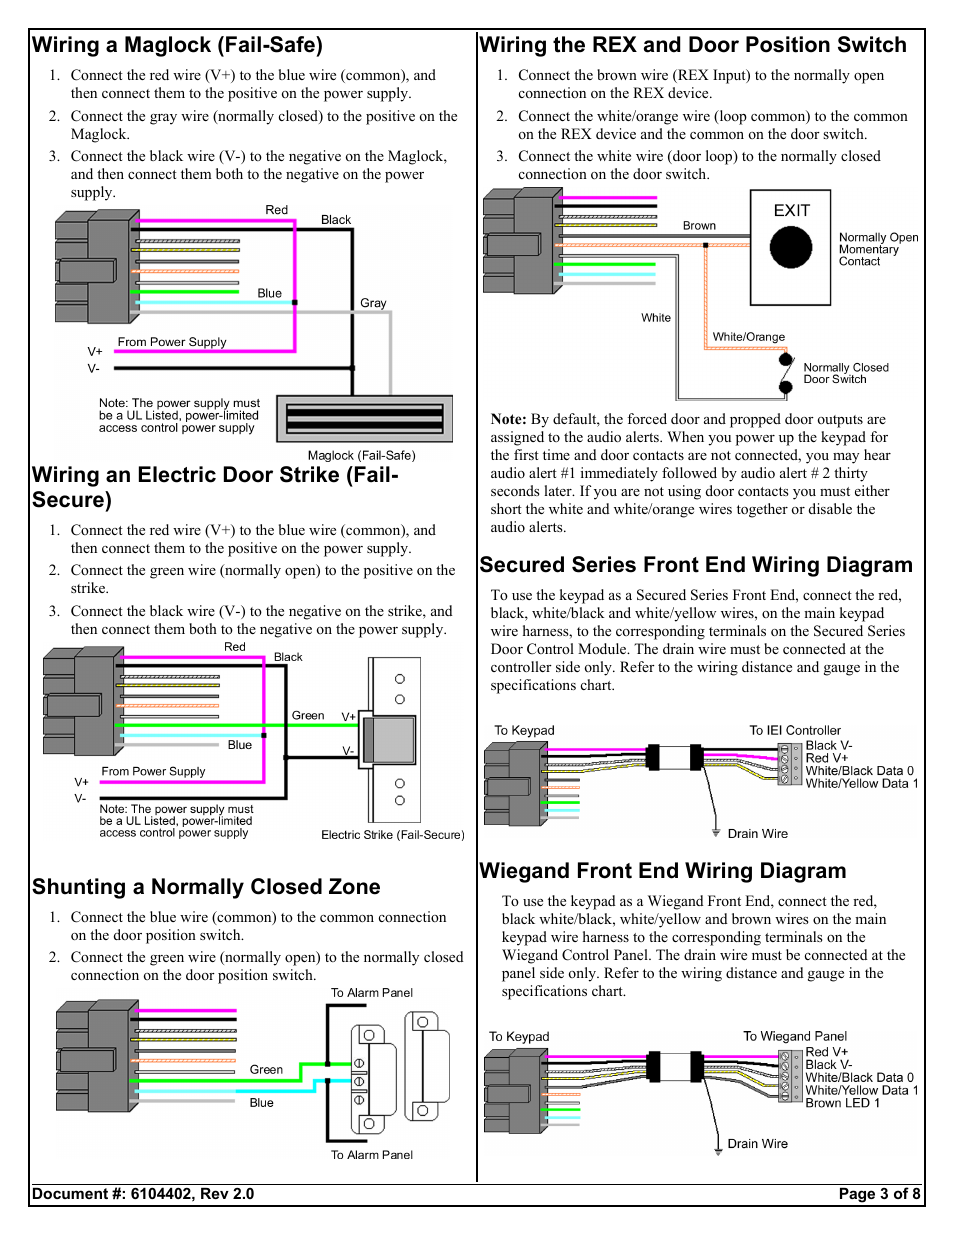 [SCHEMATICS_4UK]  Wiring a maglock (fail-safe), Wiring an electric door strike (fail-  secure), Shunting a normally closed zone | Detex DTX-4100 User Manual |  Page 3 / 8 | Detex Wiring Diagrams |  | Manuals Directory